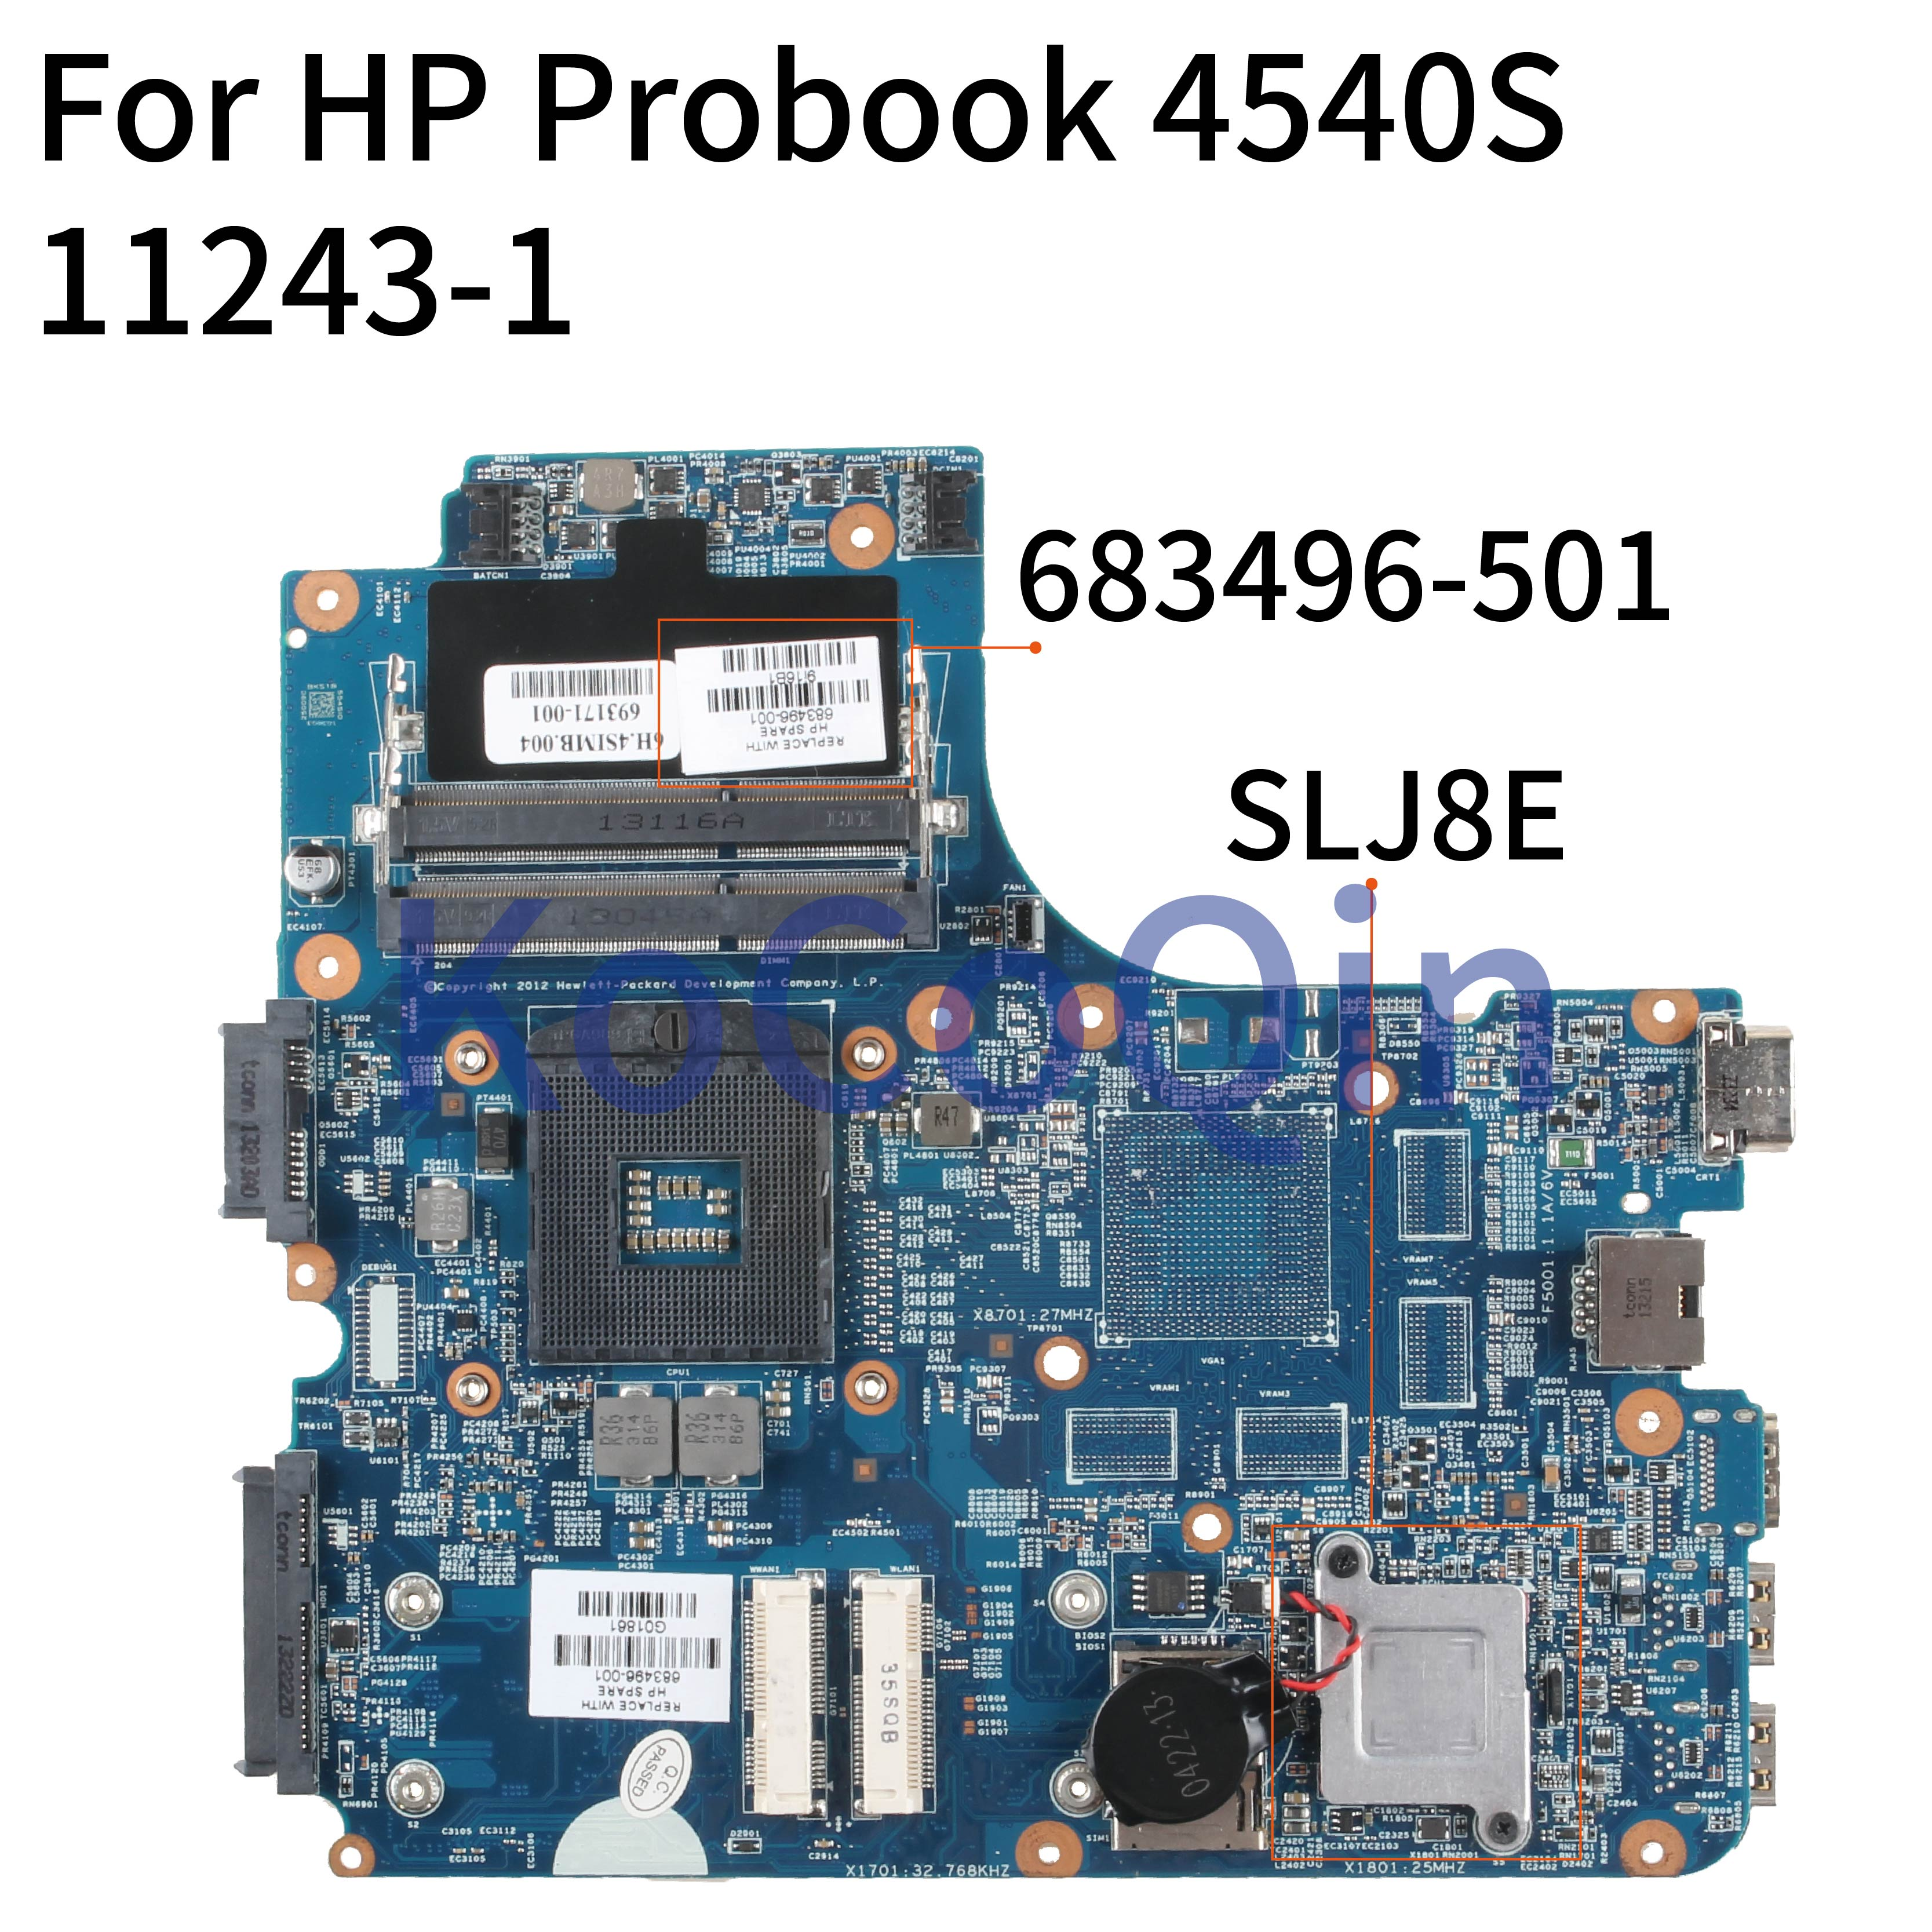 KoCoQin Laptop Motherboard For HP Probook 4440S 4540S Mainboard 11243-1 683496-501 683496-001 683496-601 SLJ8E